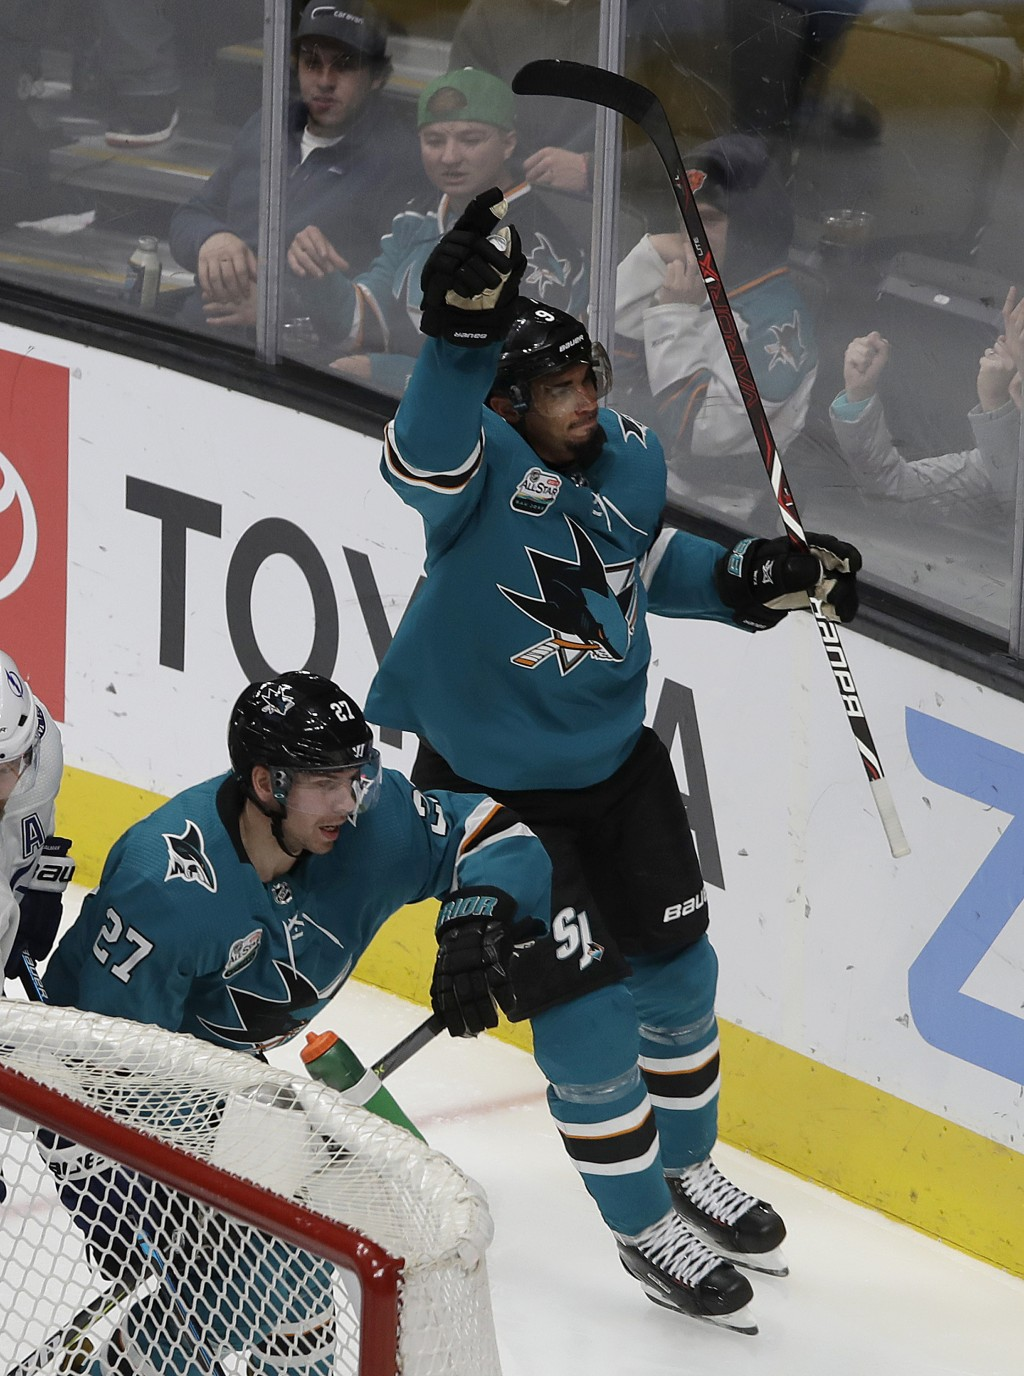 San Jose Sharks left wing Evander Kane celebrates after scoring a goal against the Tampa Bay Lightning during the third period of an NHL hockey game i